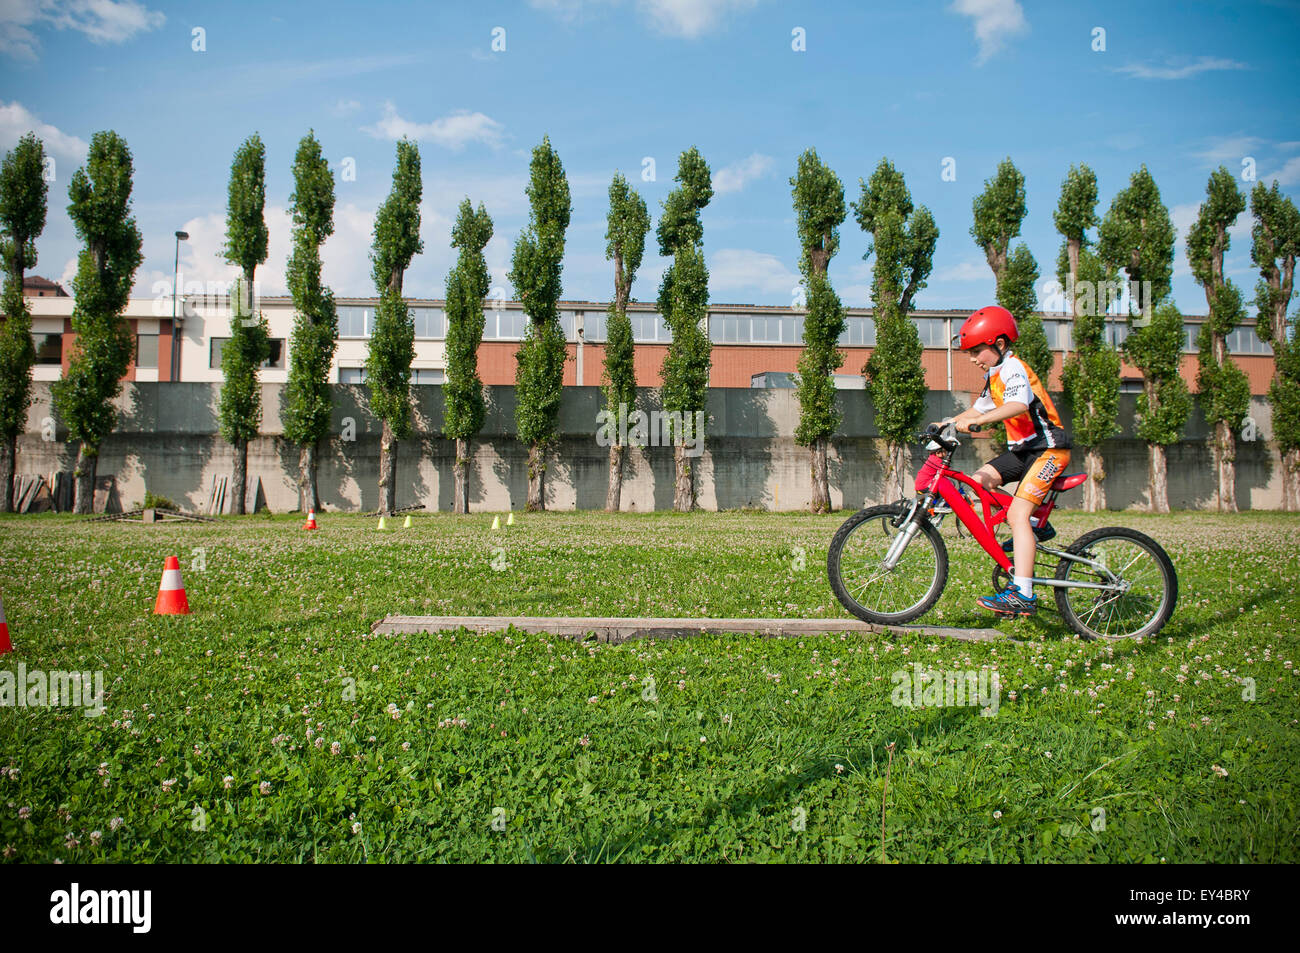 Boy Riding Mountain Bike Through Obstacle Course - Stock Image